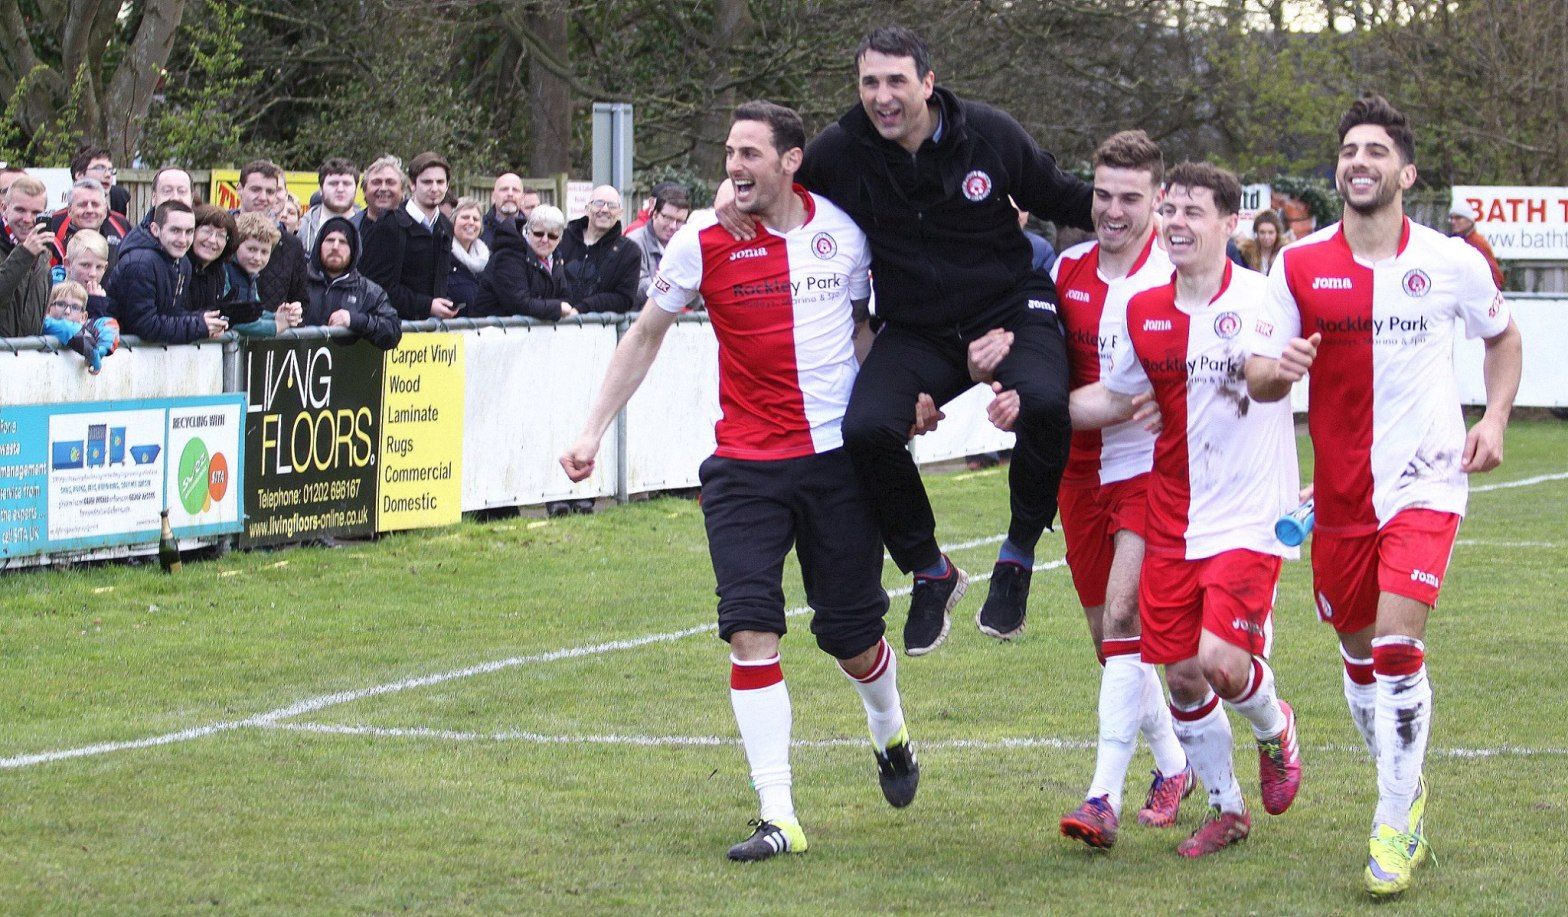 Killick carried by his charges (Photo Credit: Andy Orman)